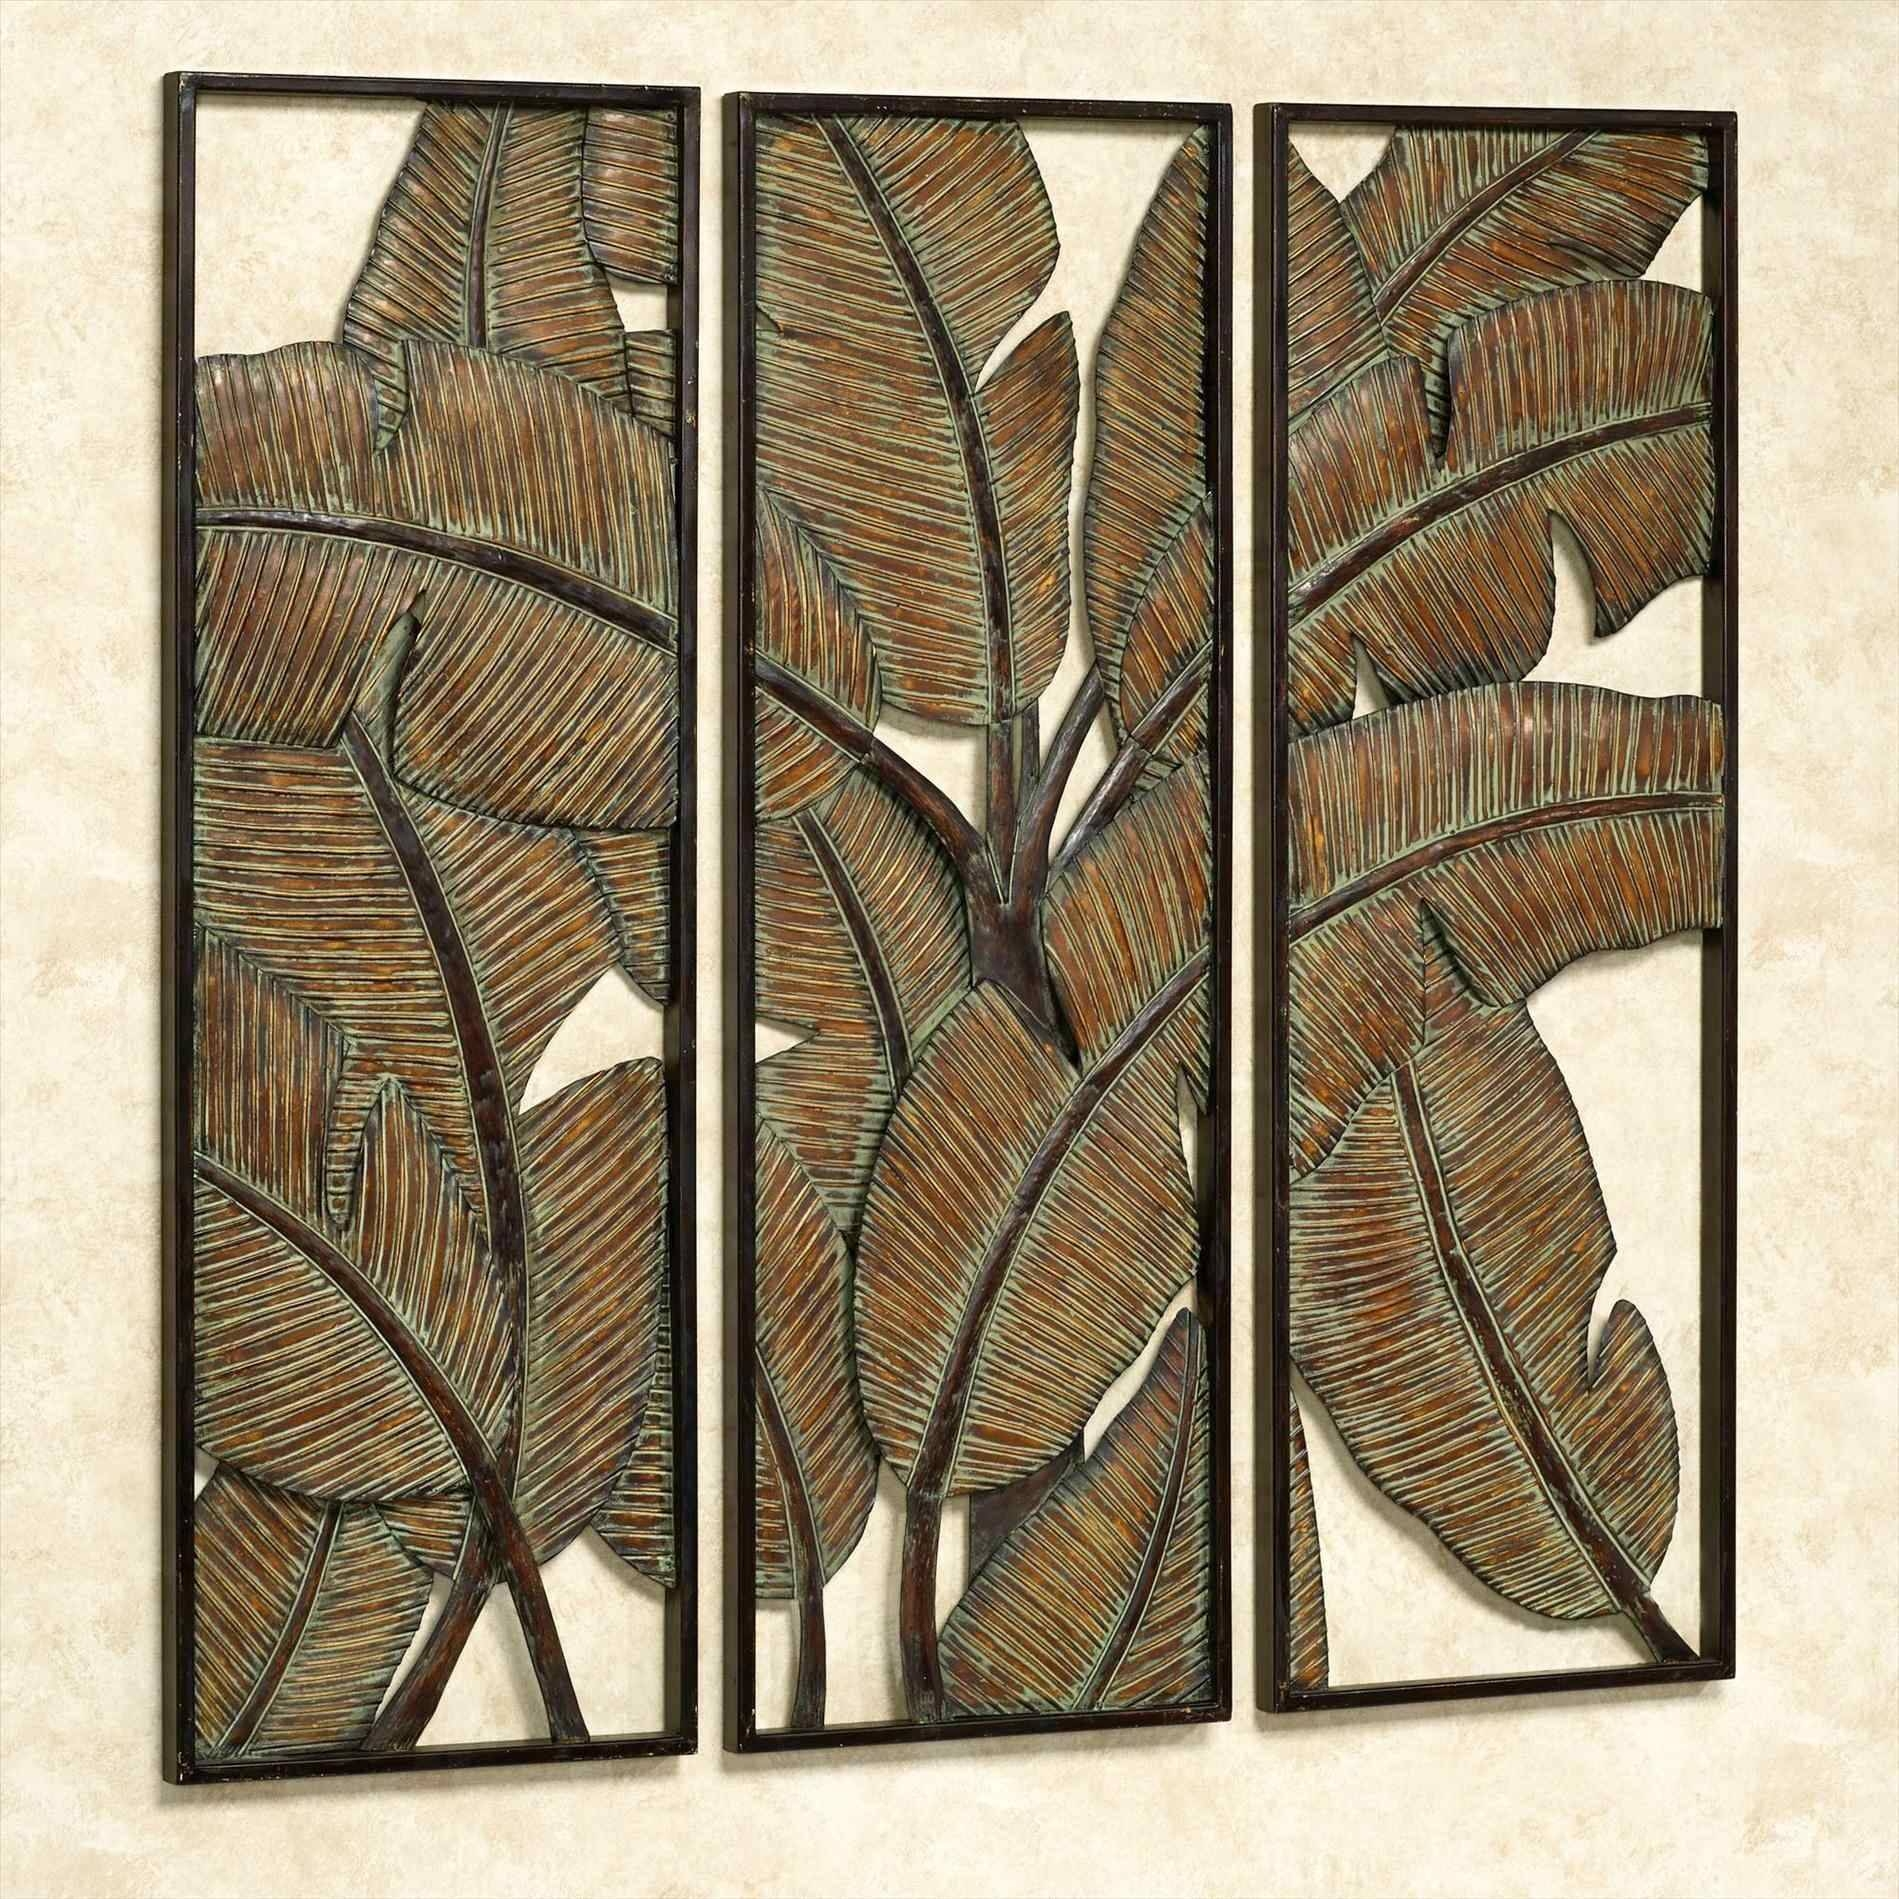 Metal Wall Decor Tags Wrought Iron Ornament Bed Framed Art Ideas With Regard To Most Up To Date Wood Framed Metal Wall Art (View 10 of 20)